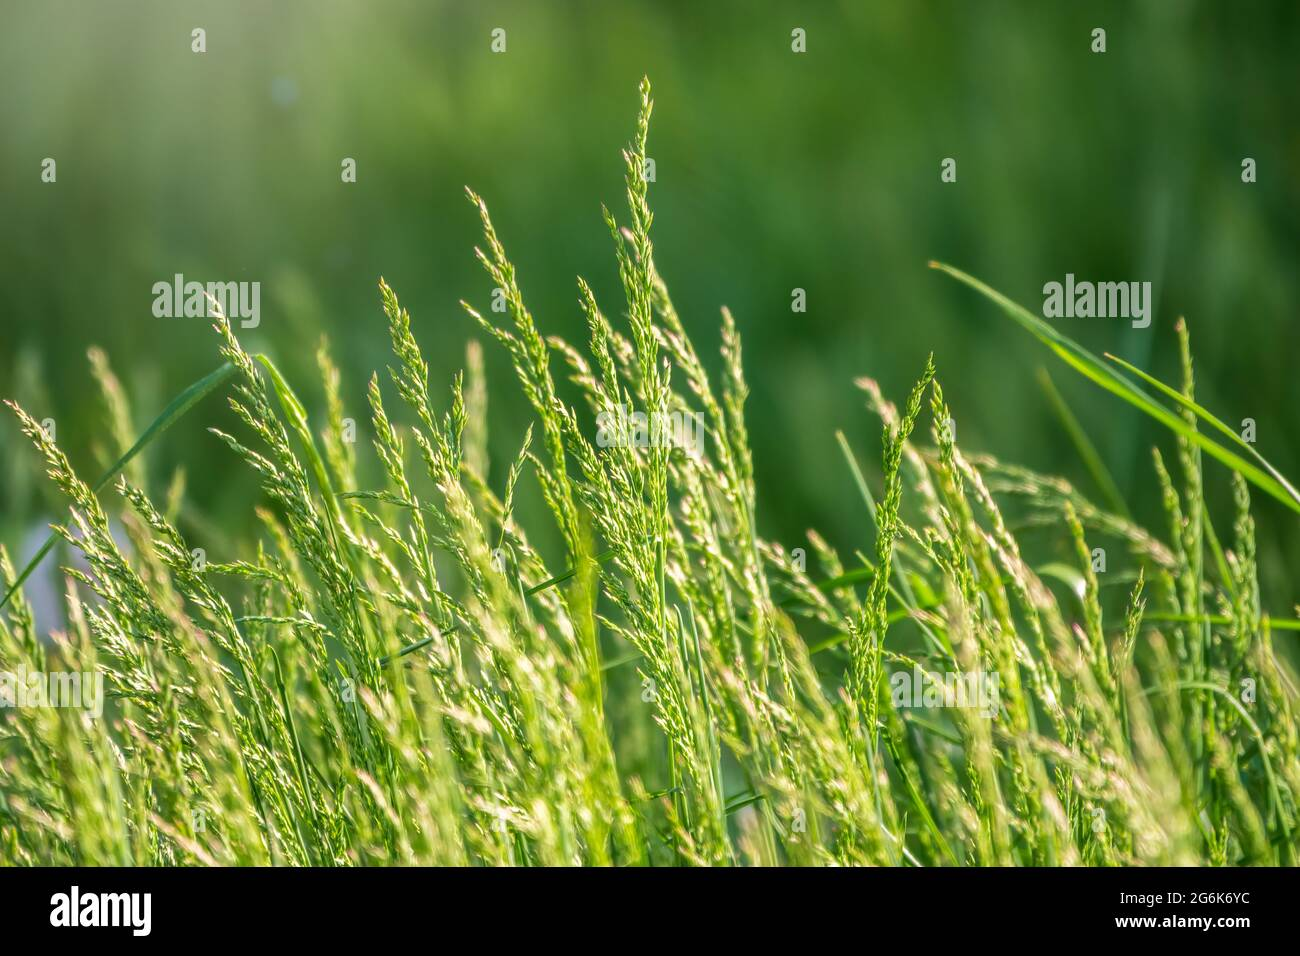 View of grass garden concept used for making green flooring, lawn for training football pitch, Grass Golf Courses green lawn pattern textured backgrou Stock Photo